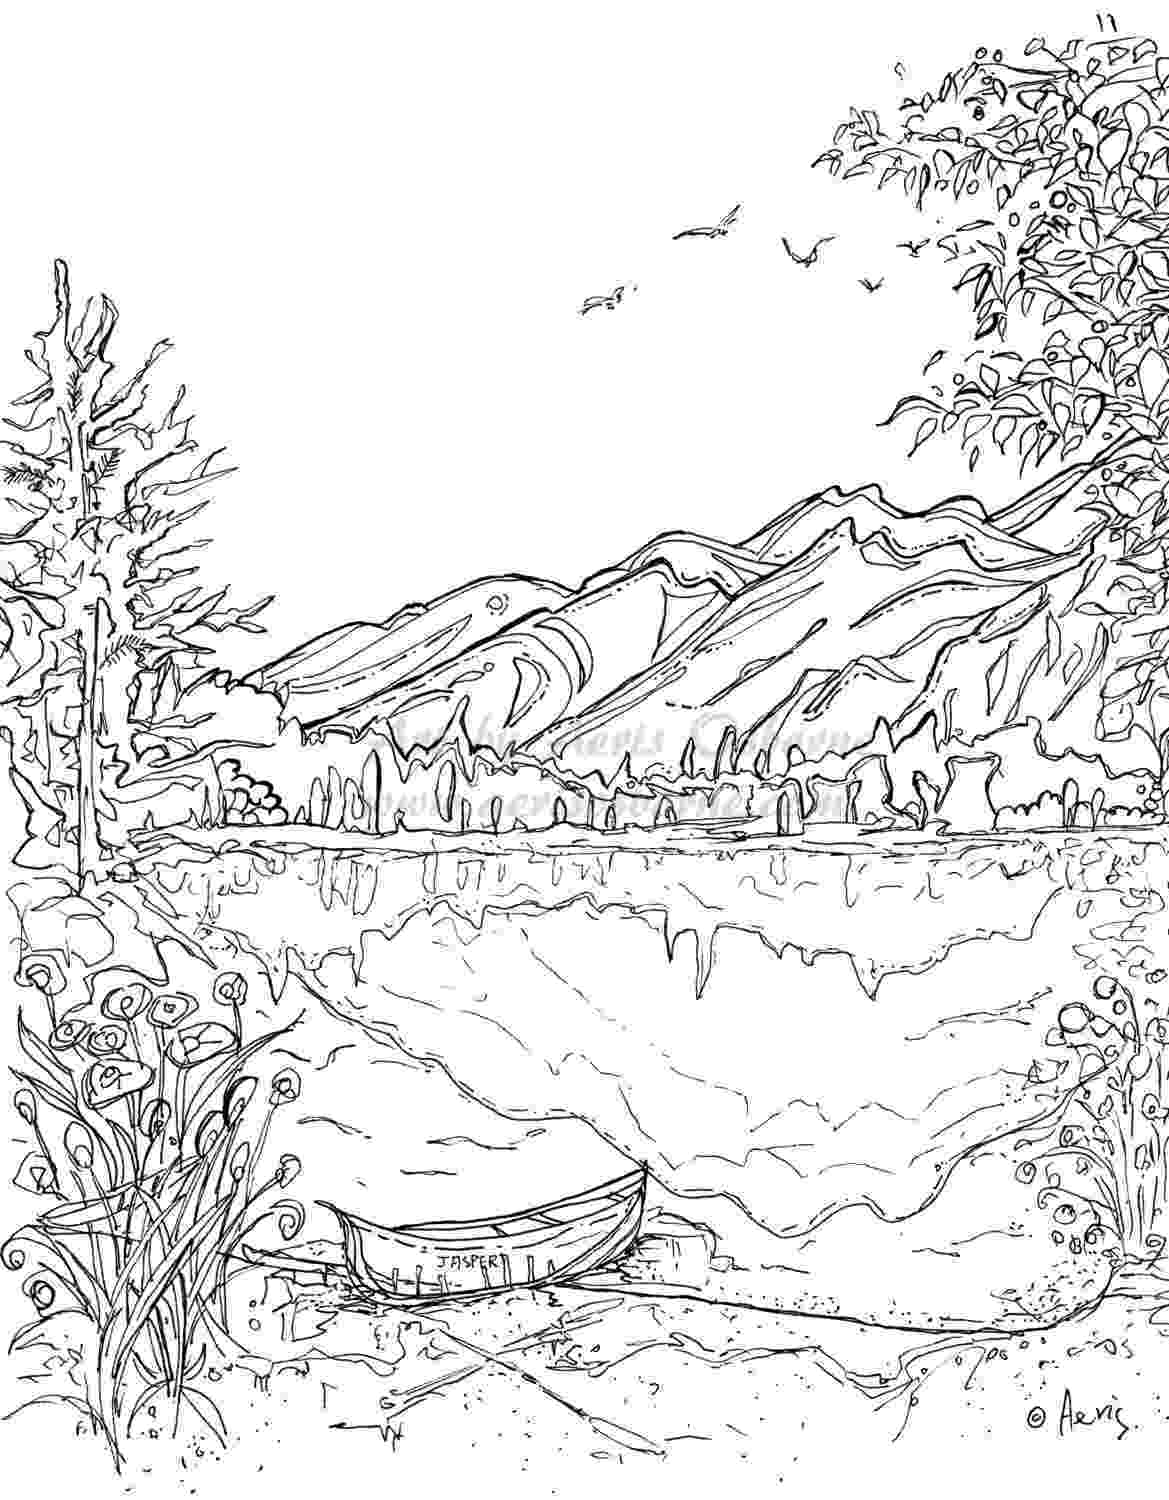 coloring pages of mountains mountain coloring pages for kids mountain mountain pages mountains coloring of